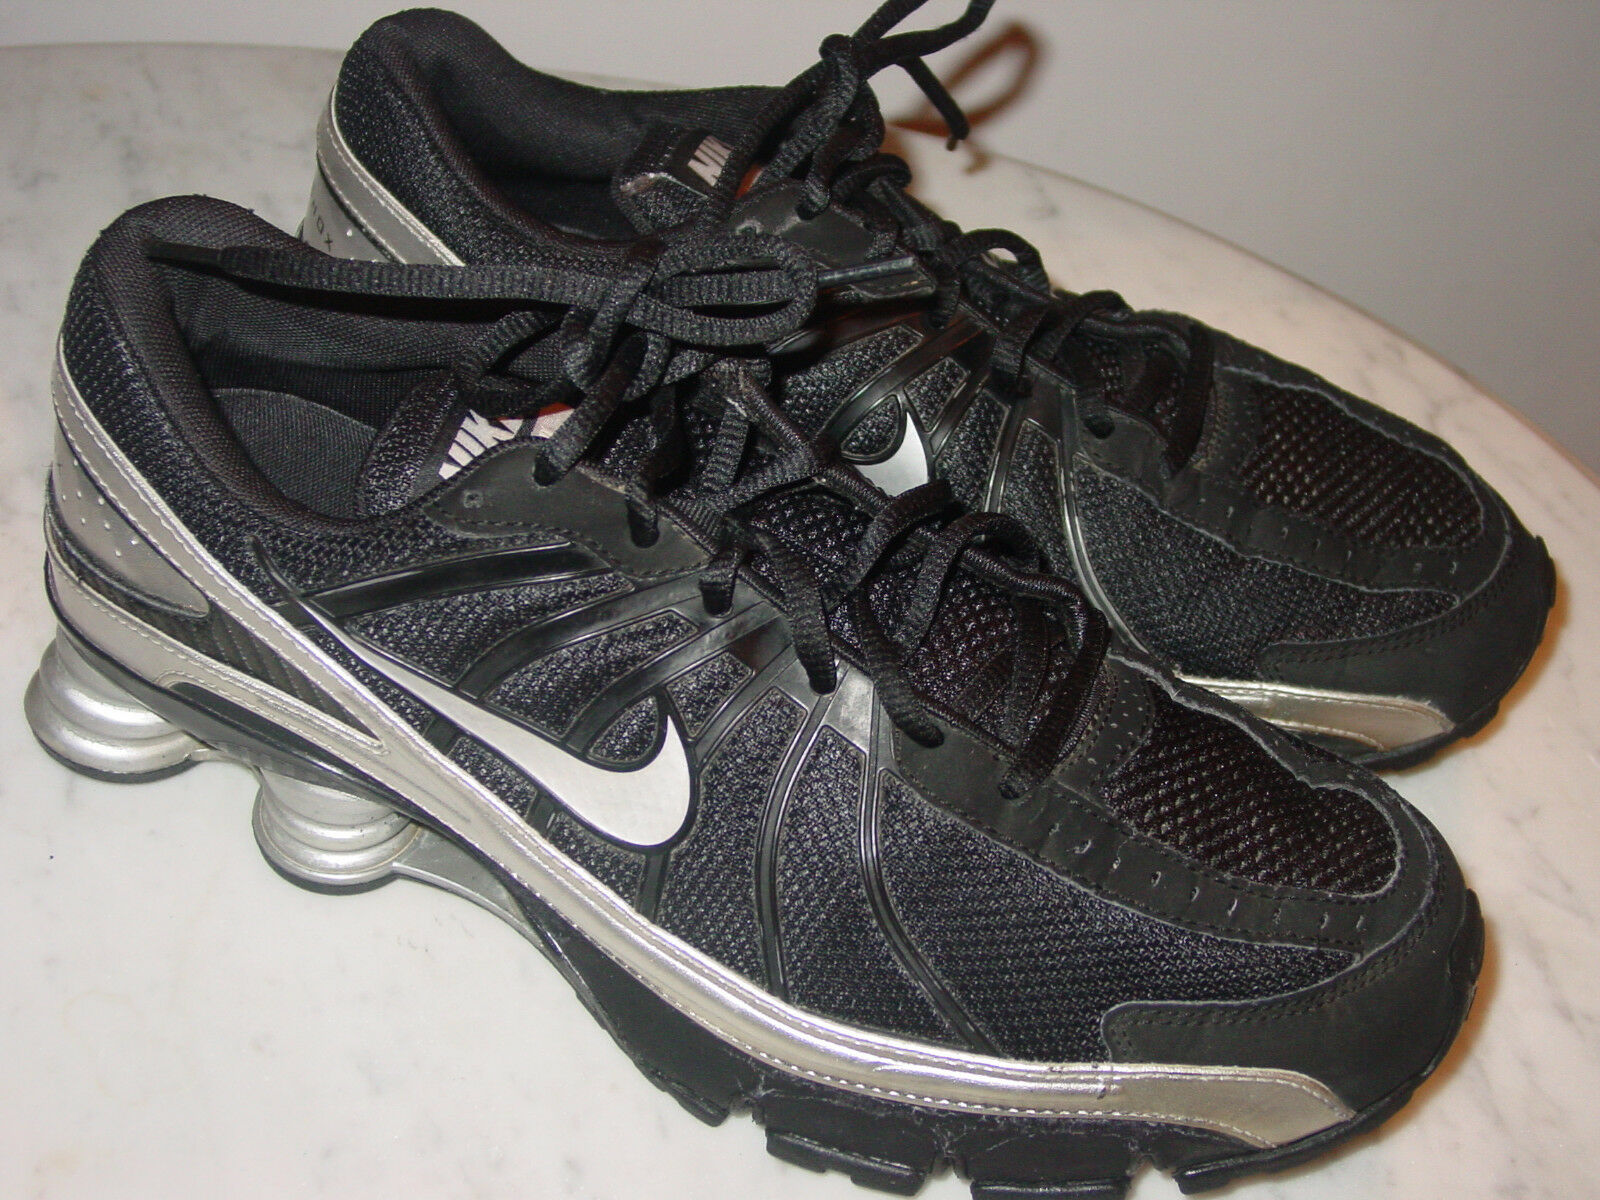 2008 Mens Nike Shox Turbo+ VII White/Black/Silver Shoes! Size 11 Sold As Is!